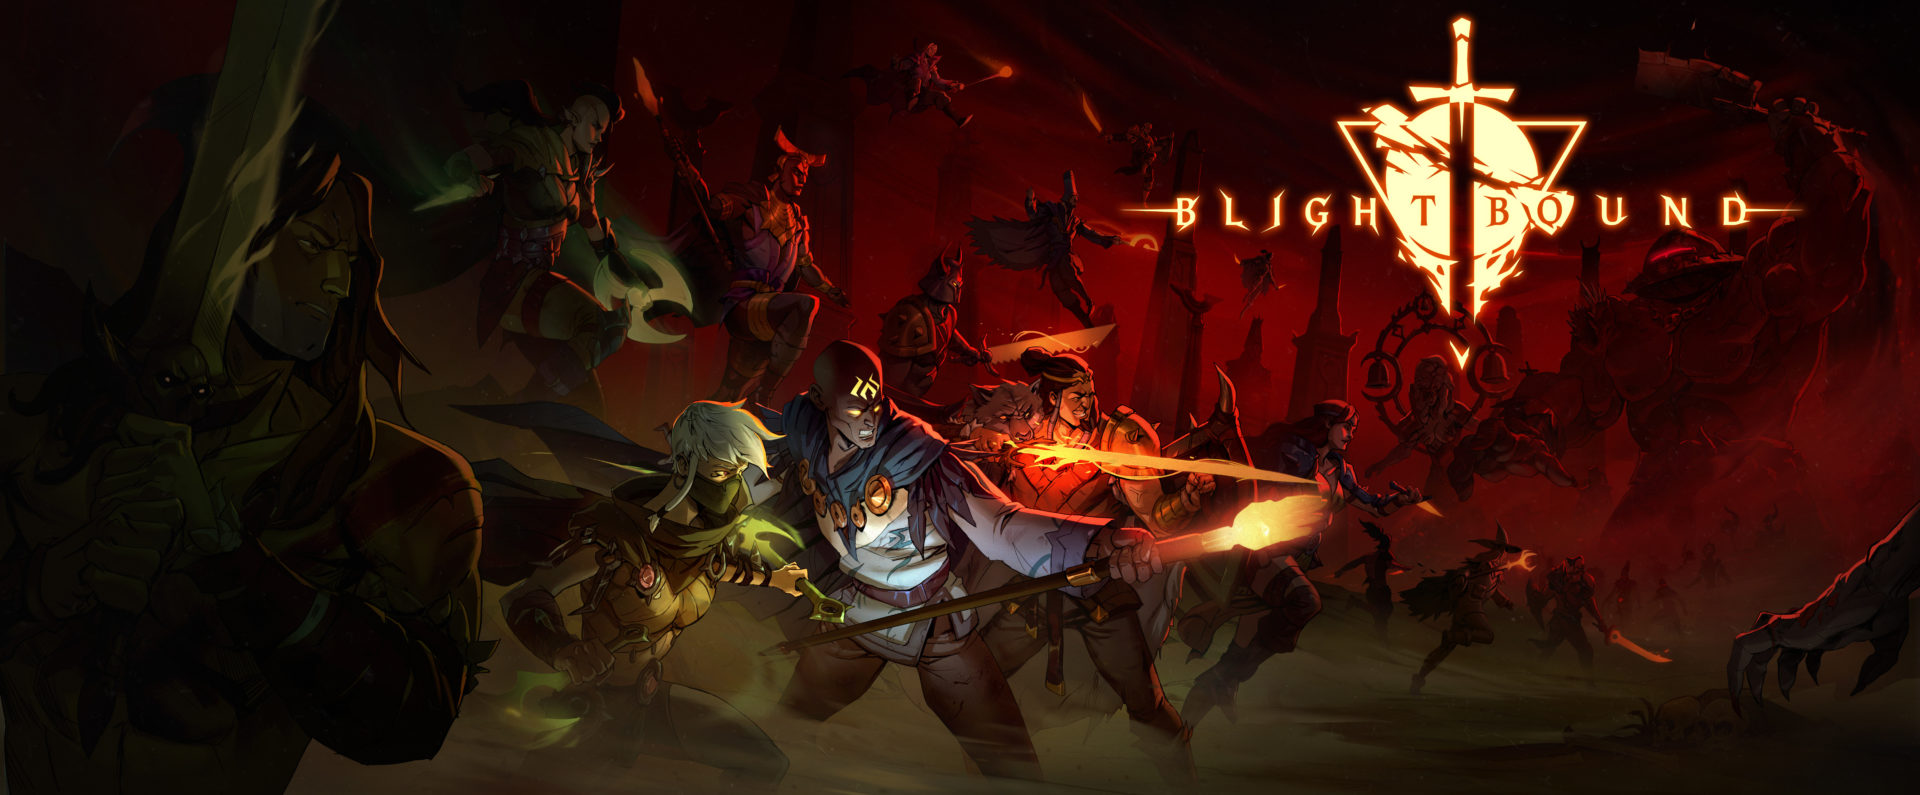 Blightbound Coming to Steam Early Access